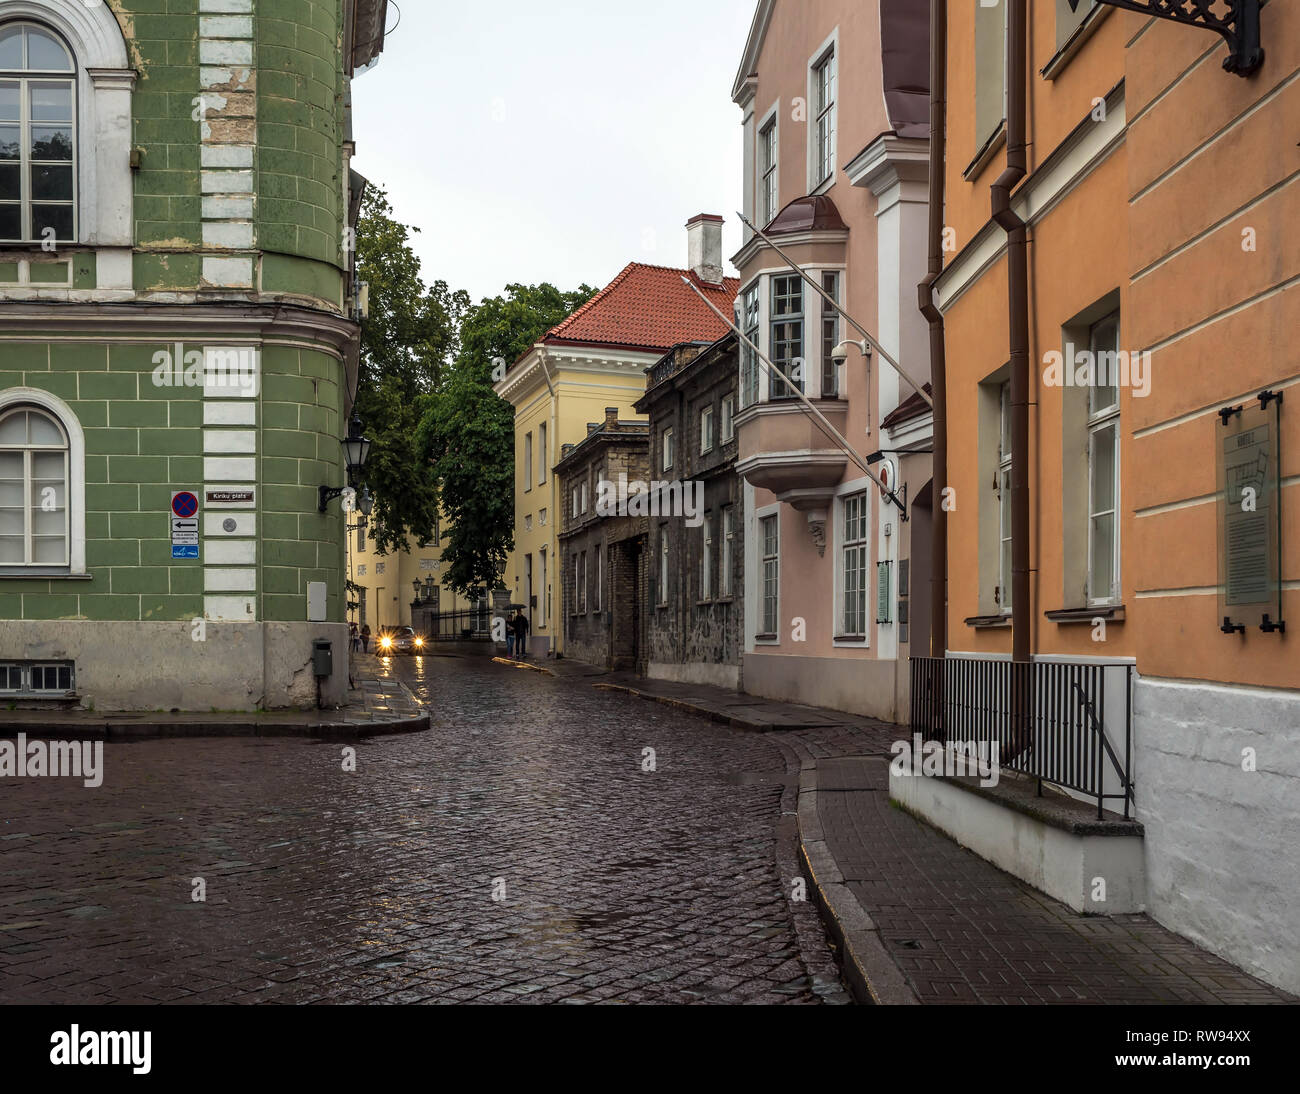 Tallinn old city street in dull, murky rainy evening, with grey sky and wet cobblestone road. Old green, pink and orange buildings in the Old Tallinn, - Stock Image